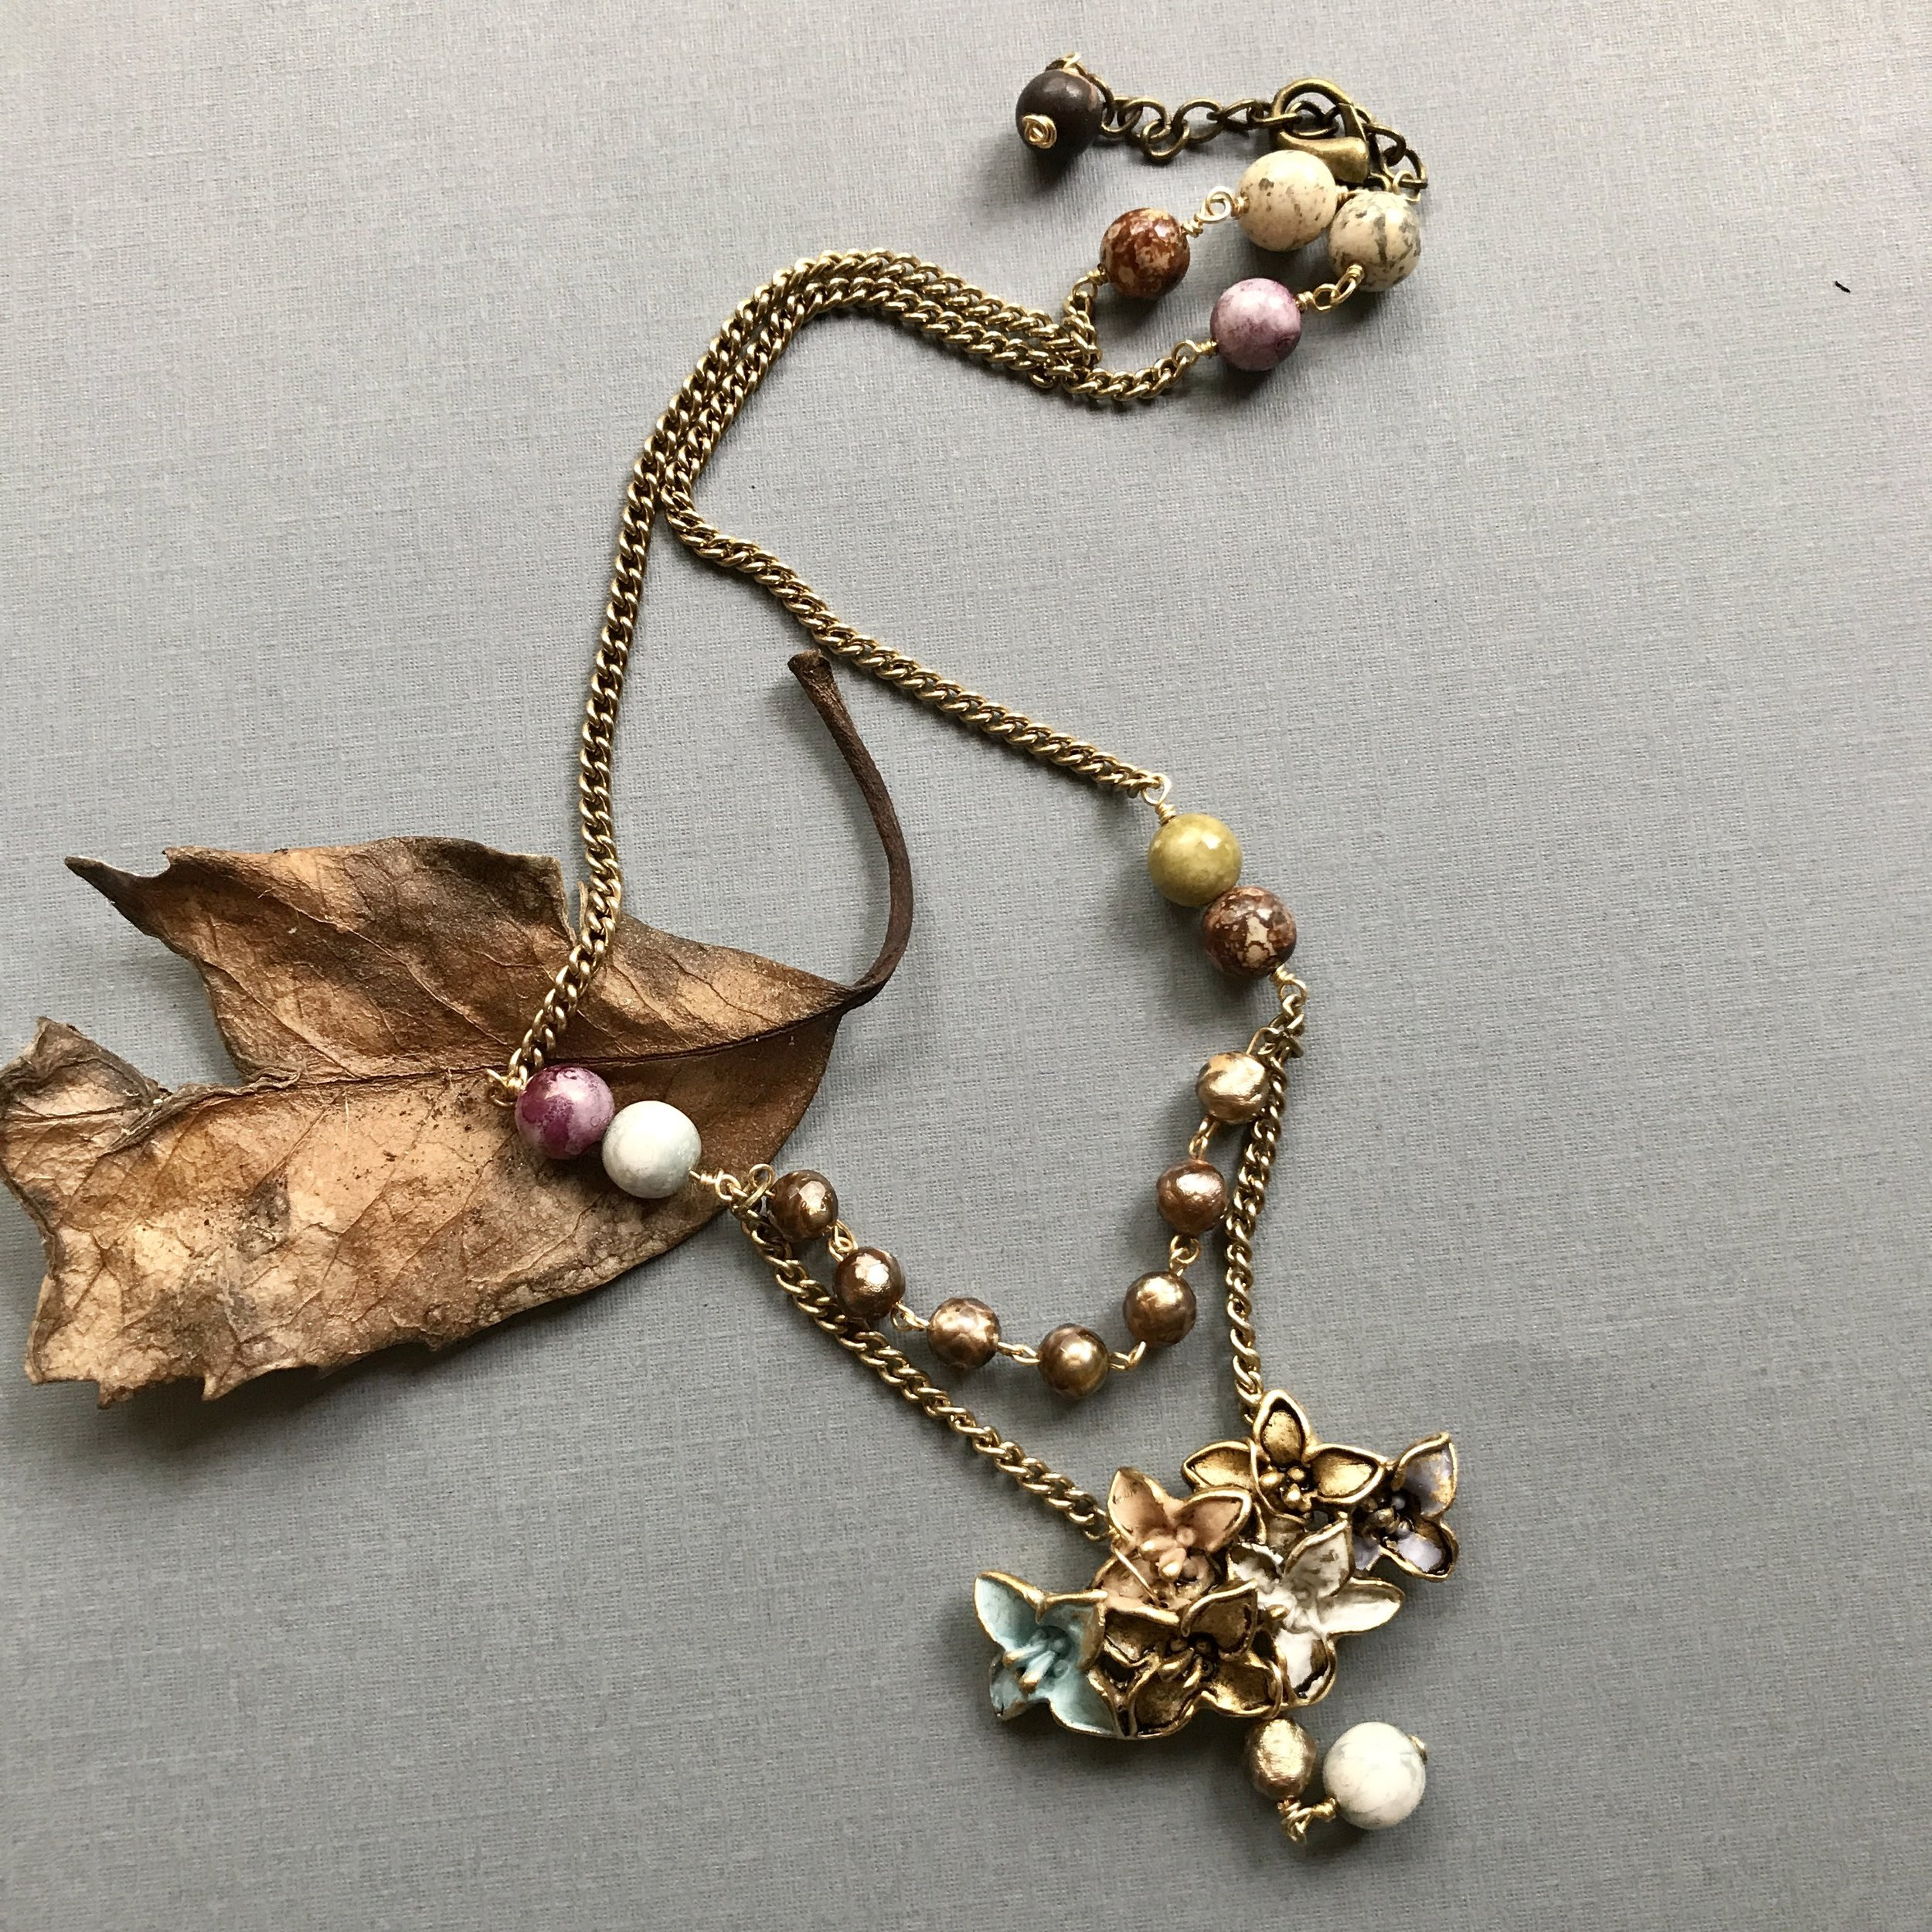 vintage assemblage necklace:  repurposed 1950s clip earring, chain from 1960s necklace, new beads and clasp